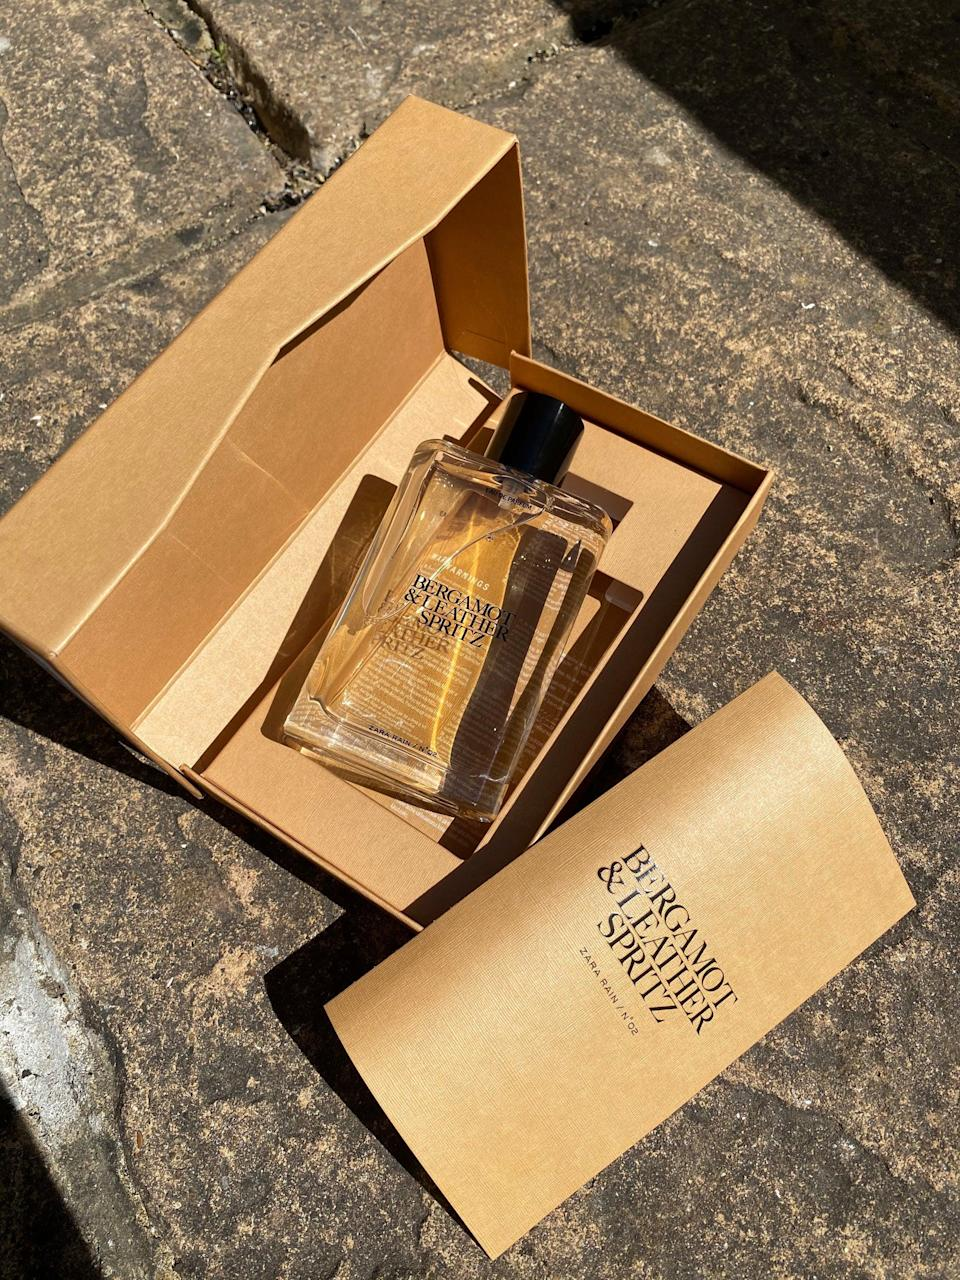 """<strong><h2>No.02 Bergamot & Leather Spritz EDP, £25.99 for 90ml</h2></strong><br>""""I must admit I don't have a type when it comes to fragrance and I'll wear anything that smells nice to me. Whether woody, floral or sweet, I'll don them all and sometimes all in one go if I'm feeling over-enthusiastic! But wow, I am in love with this perfume. The notes are a perfect mix of light sweetness with a real punch of musk. It's a little masculine but I'm very into that. The packaging and bottle are rather divine and for £25.99 it feels so luxe on a reasonable budget. Win win! I sprayed this in the morning and could still smell it on my skin later that evening, so it does last really well. The fragrance changed to a notably more subtle scent throughout the day, but it was still really lovely and interesting. Three words spring to mind with this fragrance: gorgeous, stunning and sexy. My husband complimented me on how great I smelled, but I'm not sure whether this is due to the fragrance or that I'm actually wearing perfume for the first time in forever..."""" <strong>– Meg O'Donnell, art editor.</strong><br><br><br><strong>Zara Rain</strong> No.02 Bergamot & Leather Spritz, $, available at <a href=""""https://www.zara.com/uk/en/n%C2%B002-bergamot-and-leather-spritz-edp-90-ml---3-04%C2%A0oz-p20110271.html?v1=108989261"""" rel=""""nofollow noopener"""" target=""""_blank"""" data-ylk=""""slk:Zara"""" class=""""link rapid-noclick-resp"""">Zara</a>"""